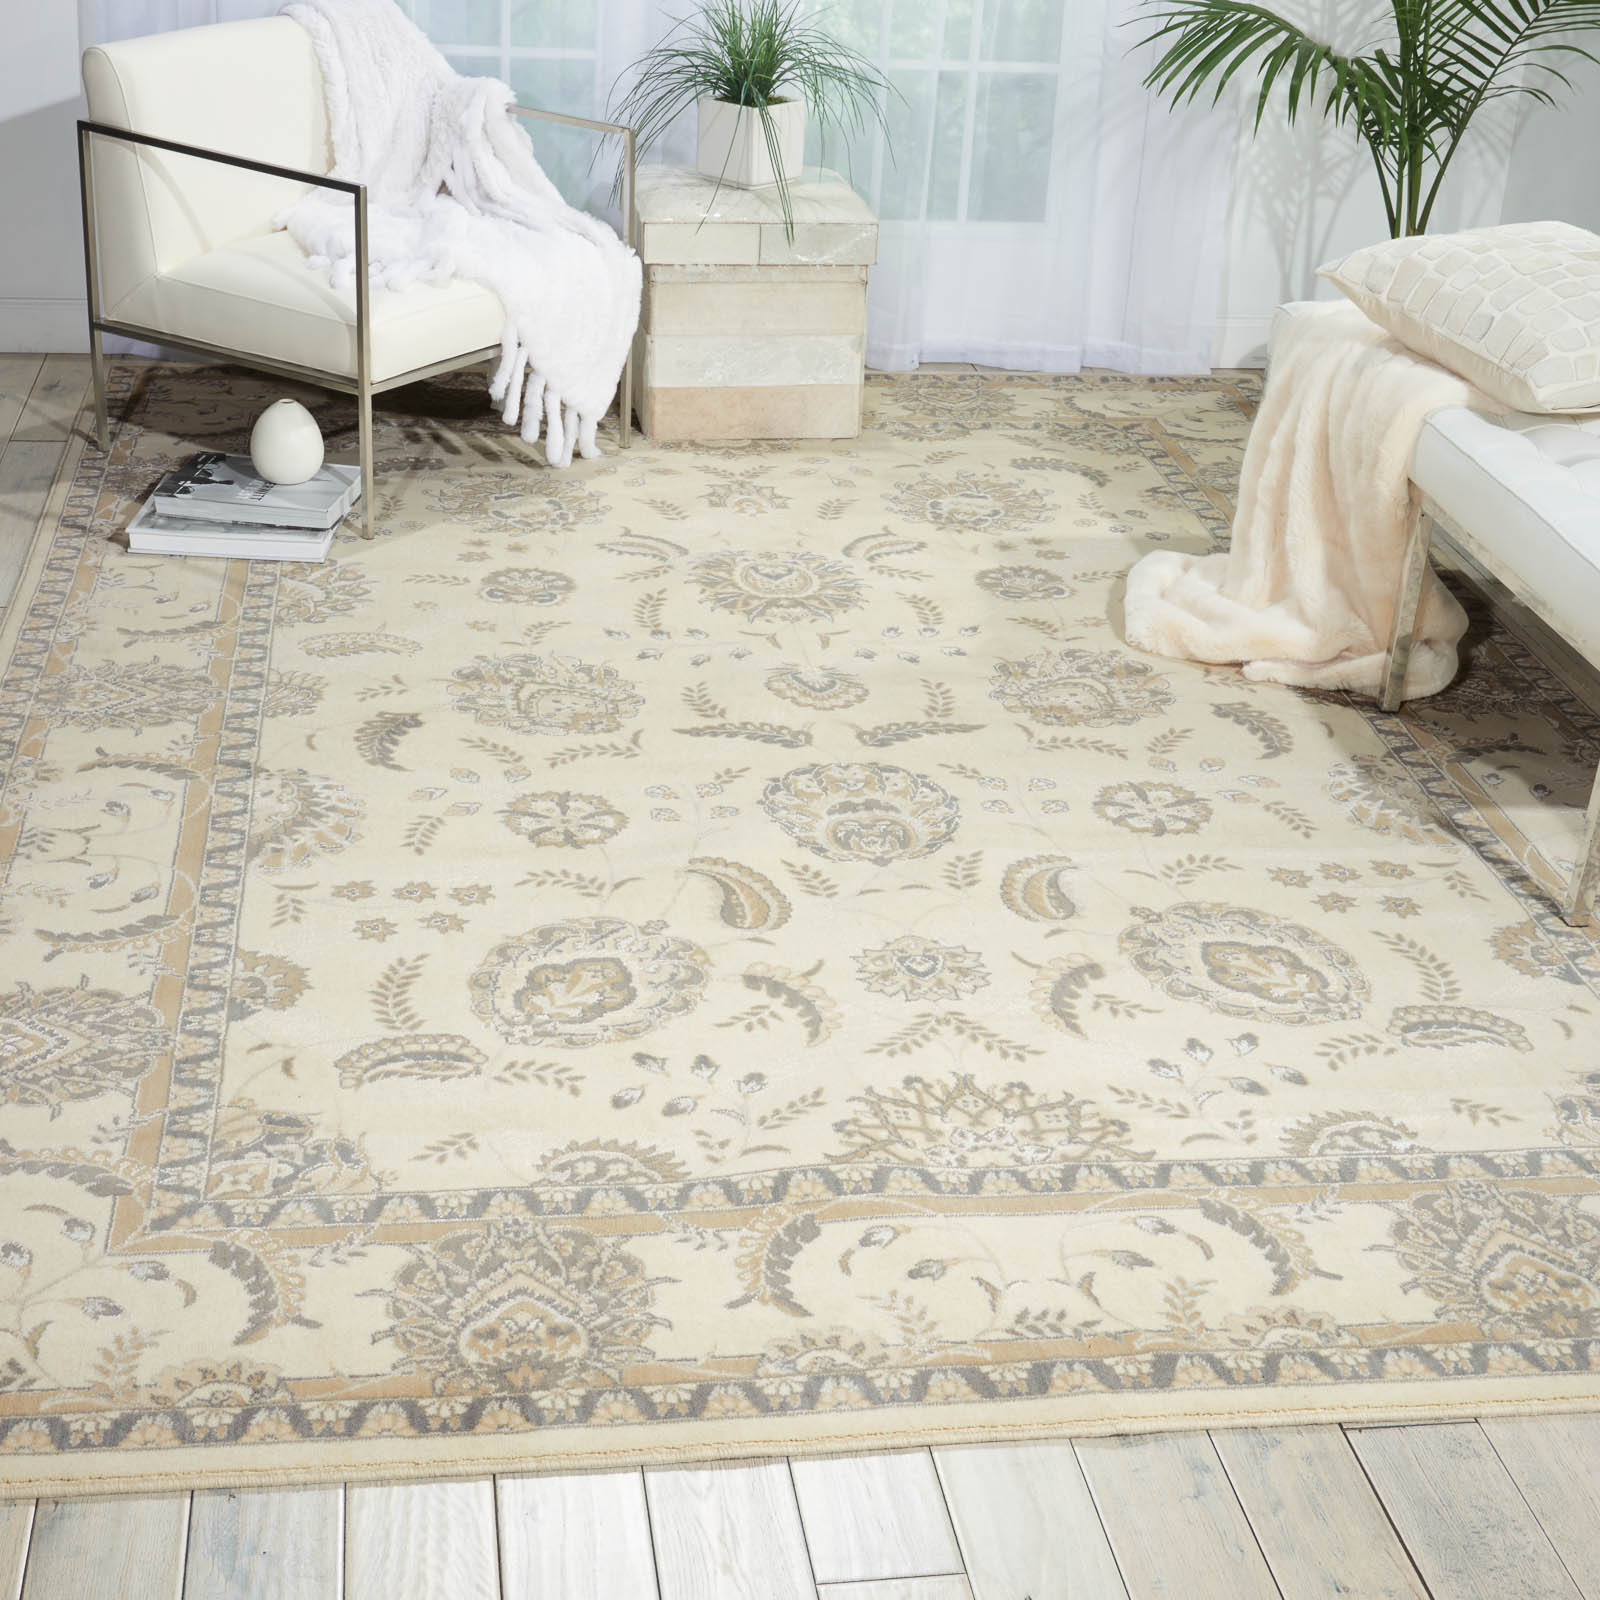 Persian Empire Rugs PE22 Bone by Nourison